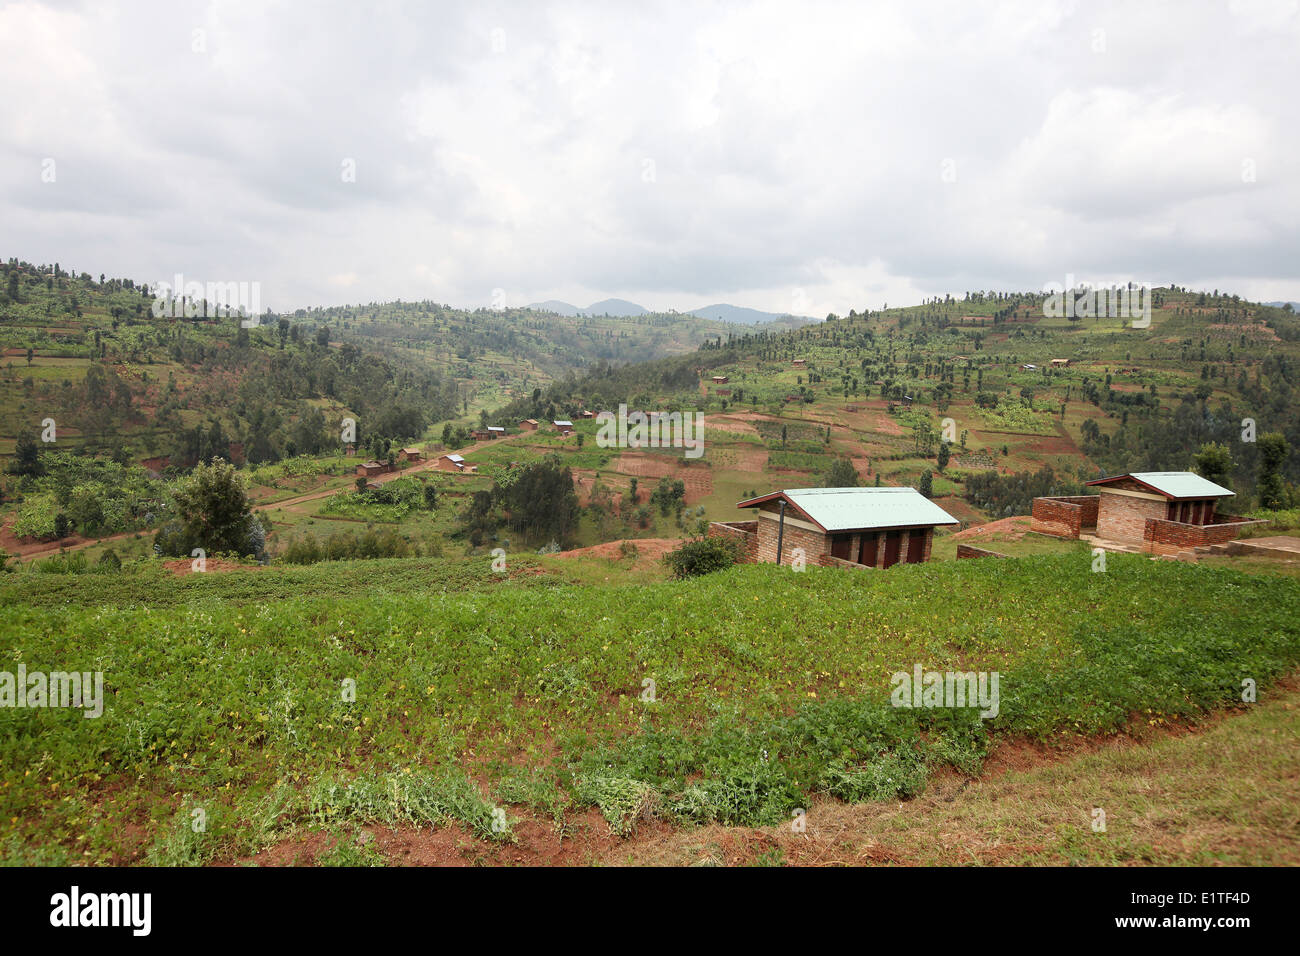 A rural village in the Murambi sector in the Rulindo district of Northern Province, Rwanda. - Stock Image